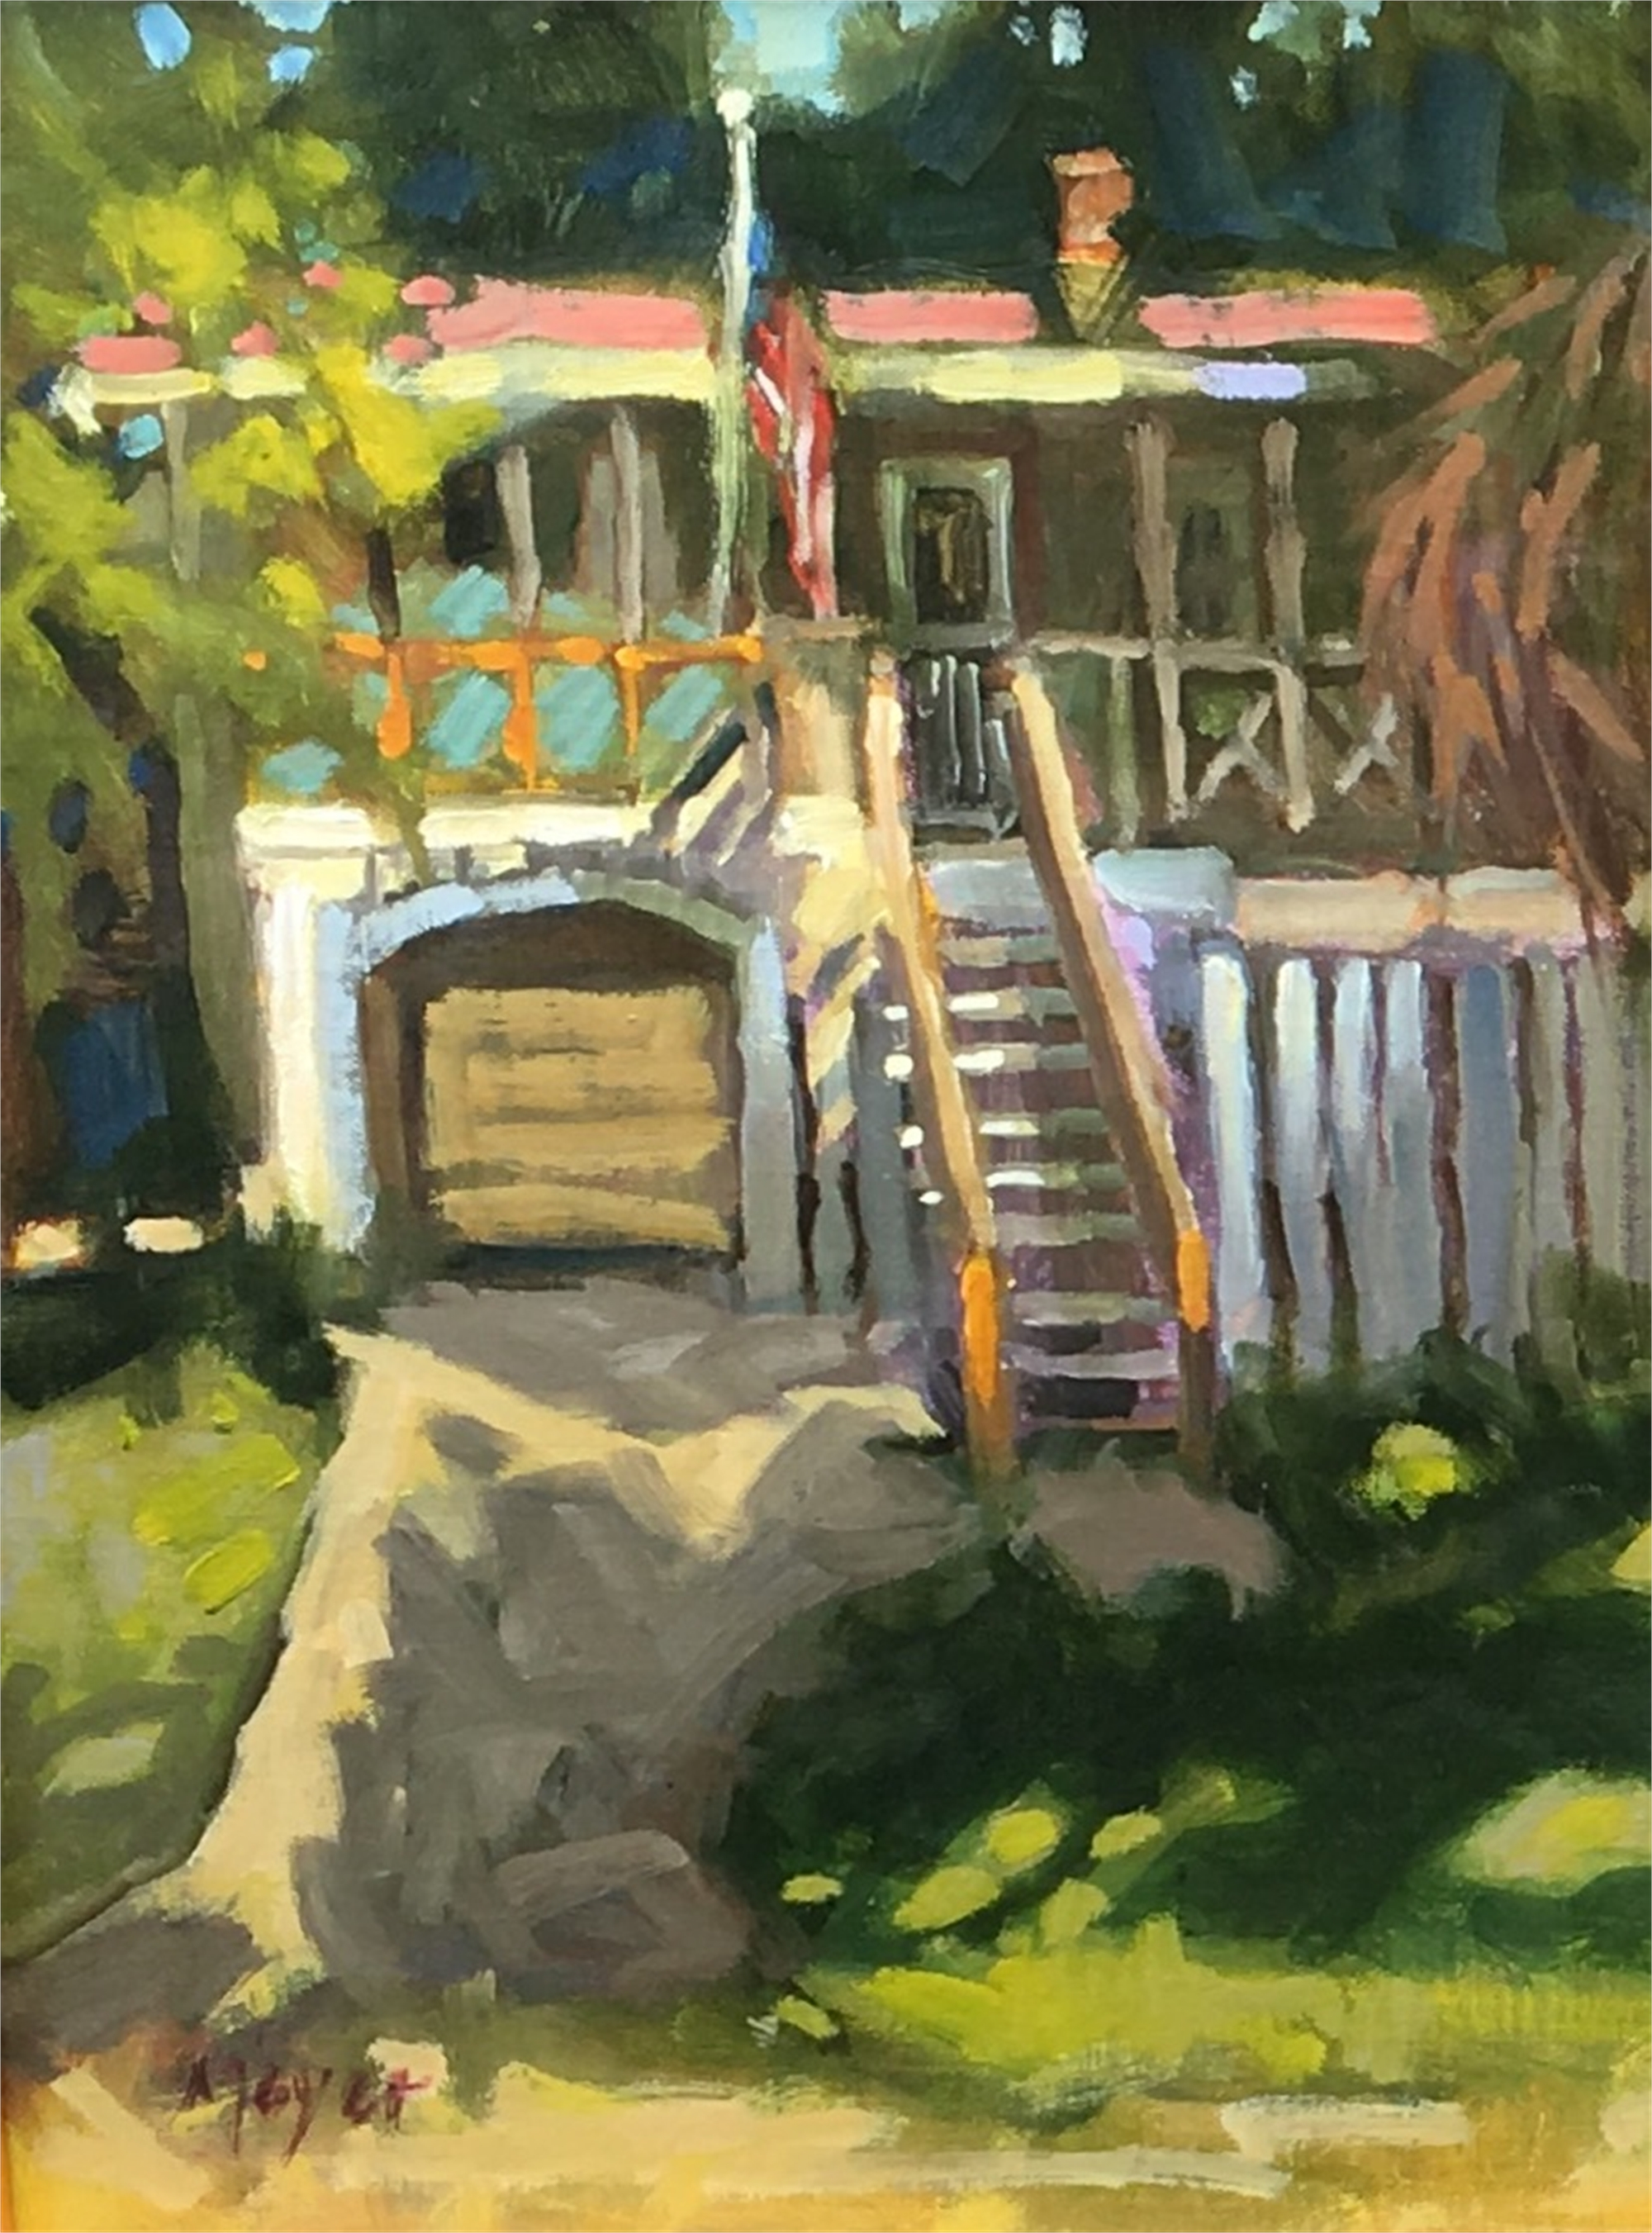 Sullivan's Cottage by Laurie Meyer